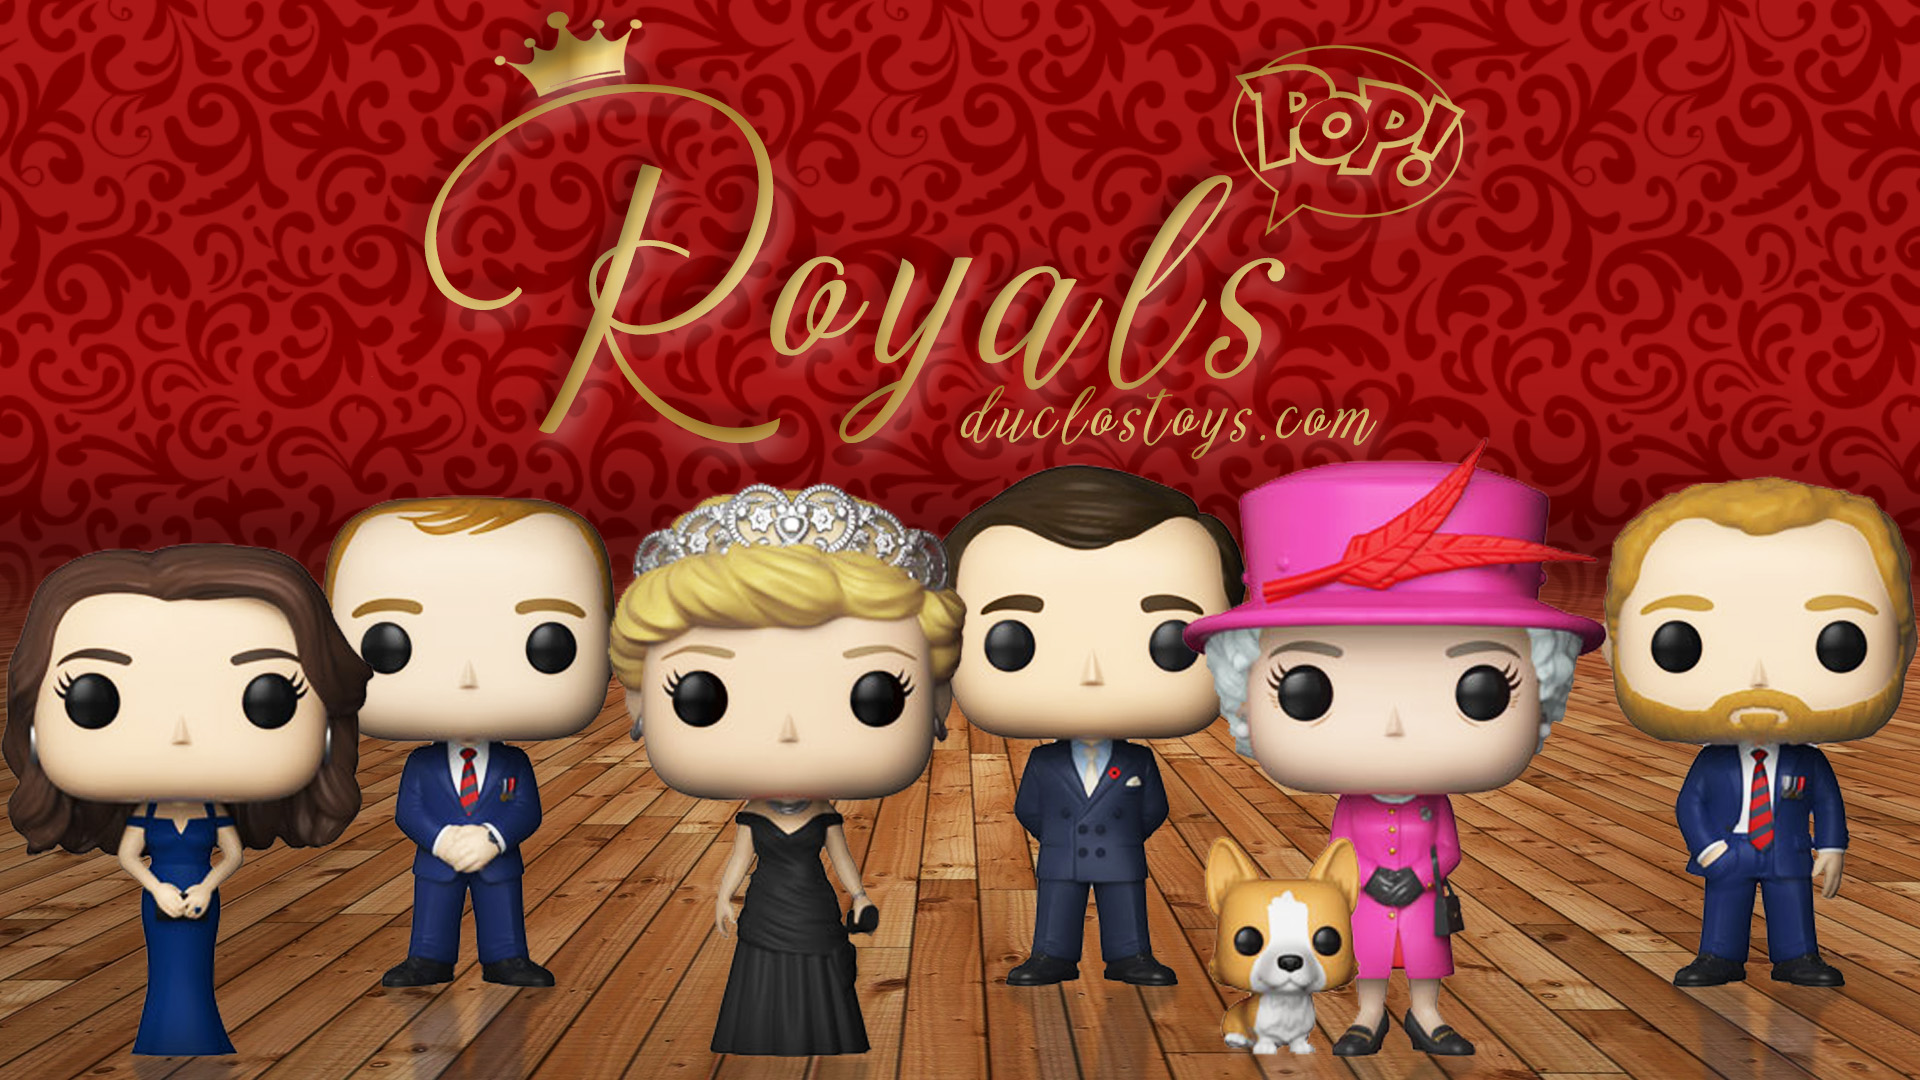 Duclos Toys - Funko Pop Royals - British Royals